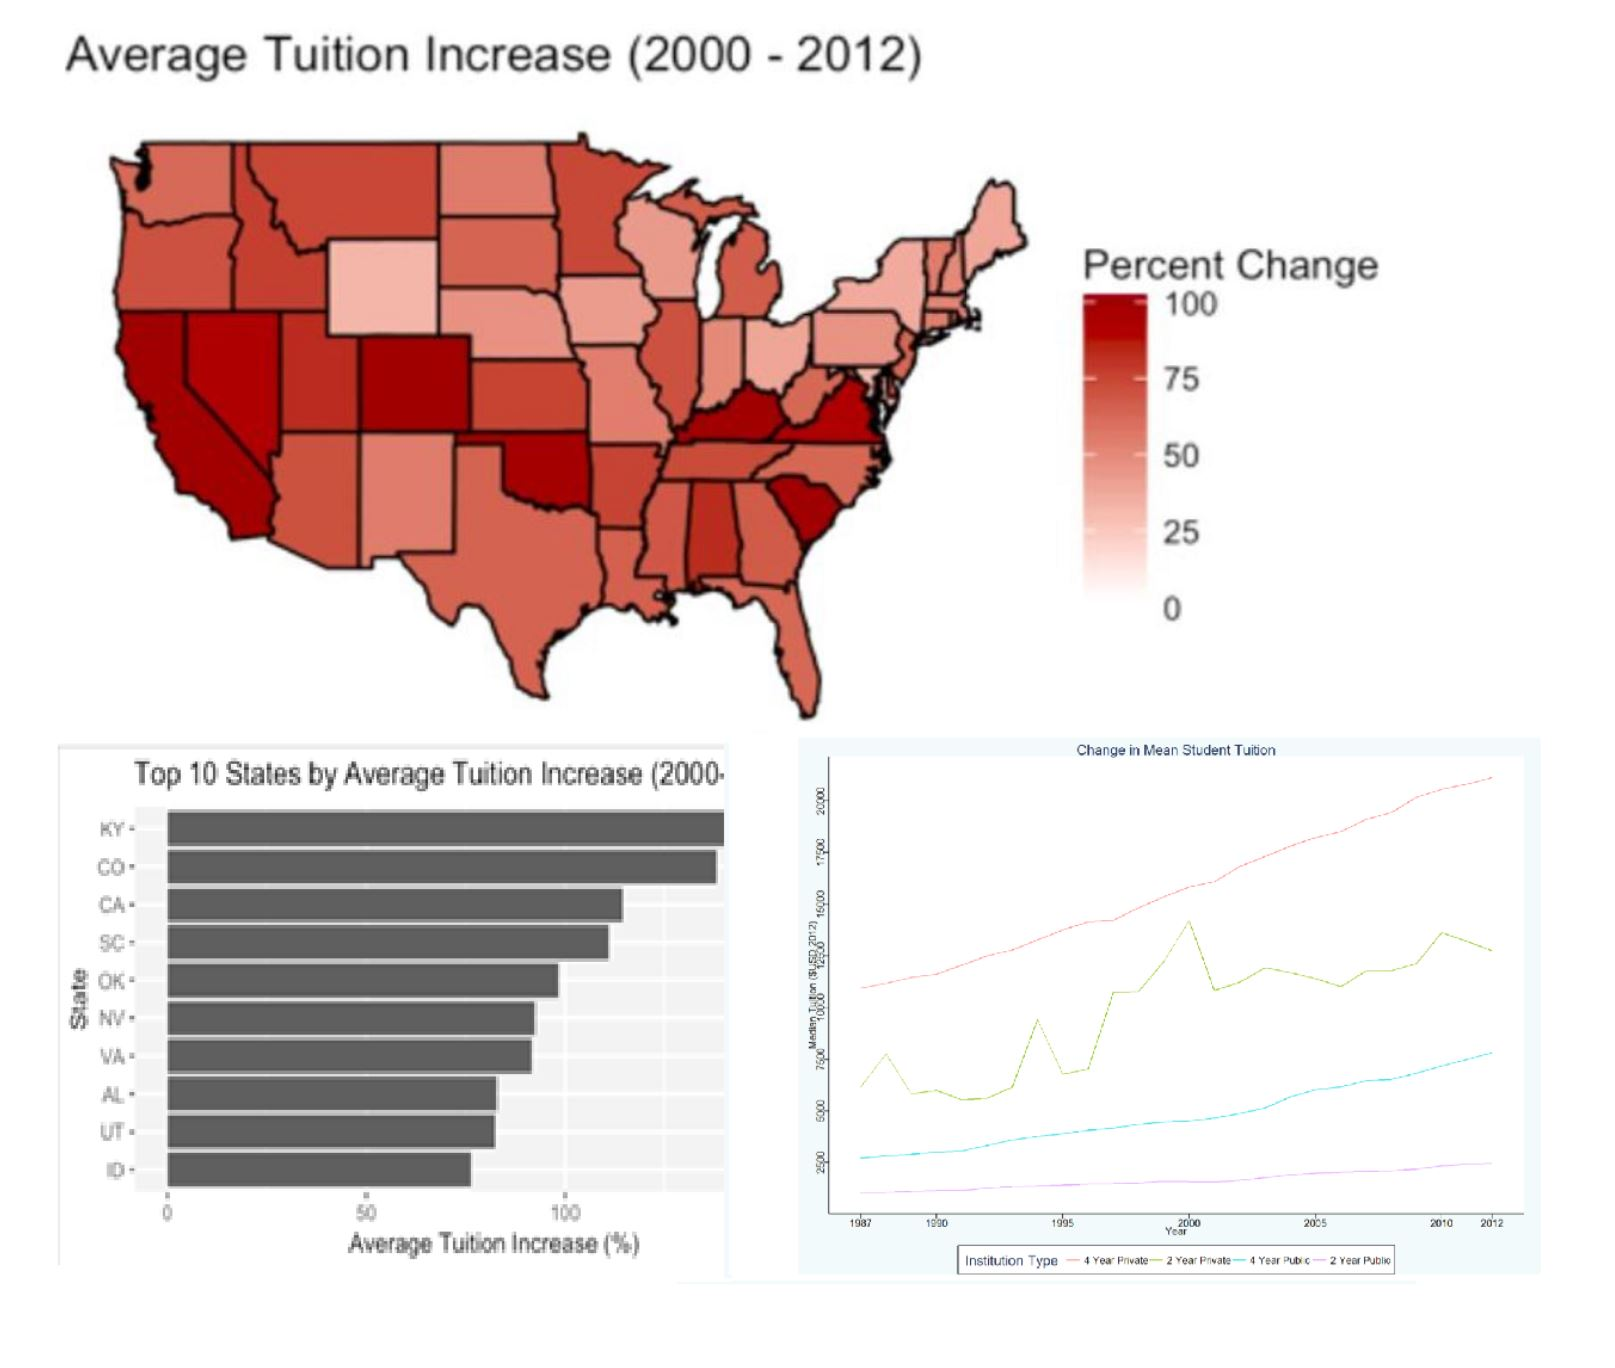 Various information about the effects of rising tuition on American students